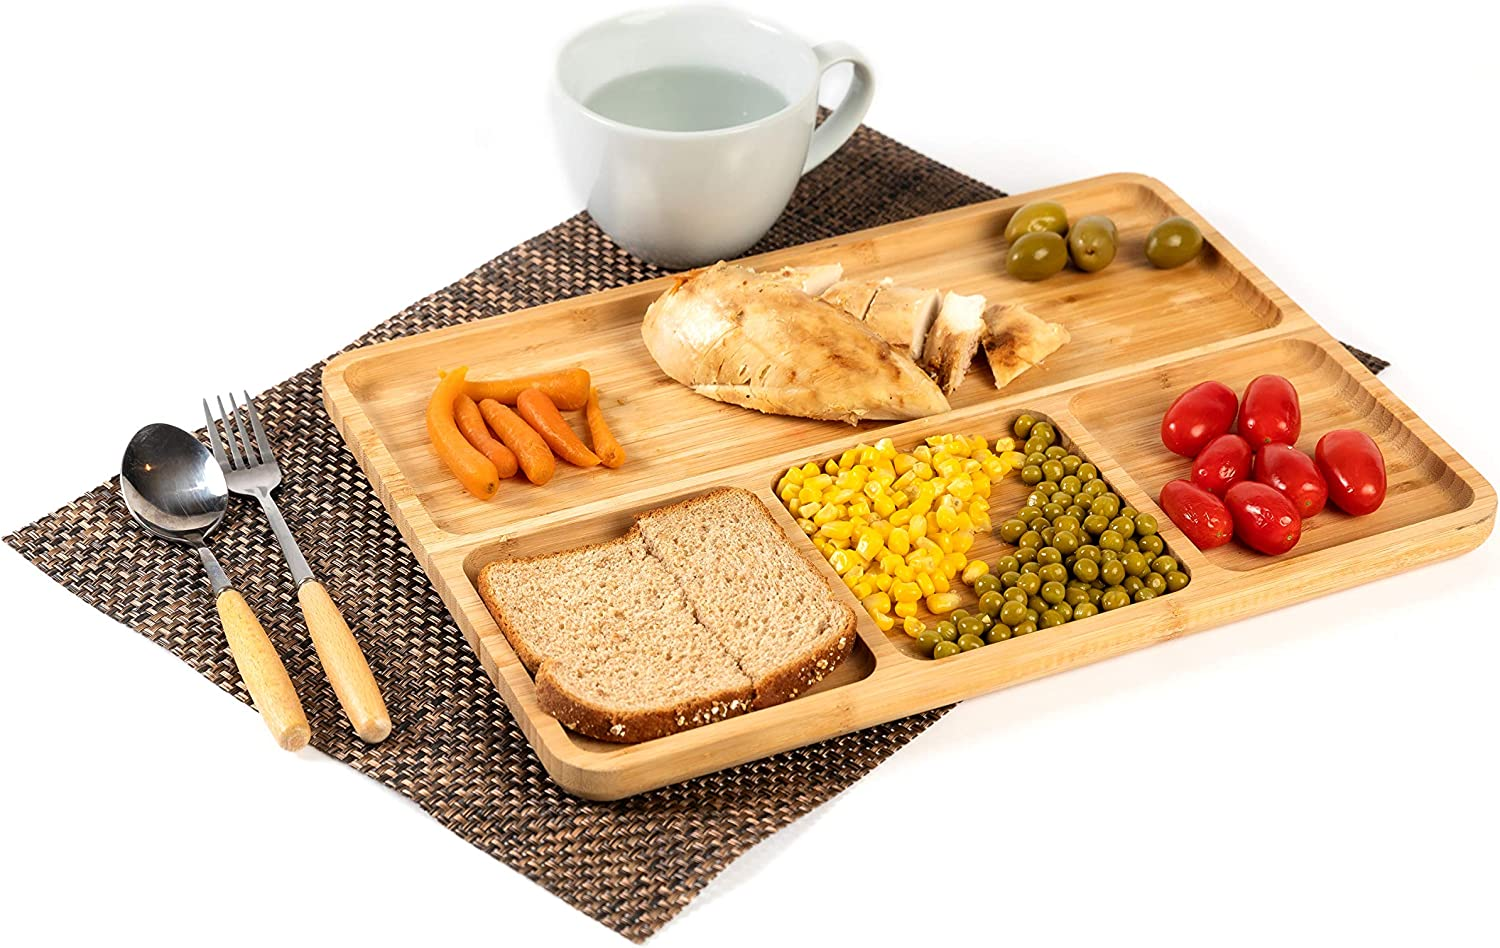 Bamboo portion platters (Set of 2), divided dinner platter for adults, food cubby plate divider, meal portion control plate, wooden plates for kids& adults, balanced meal plate, New Home essentials